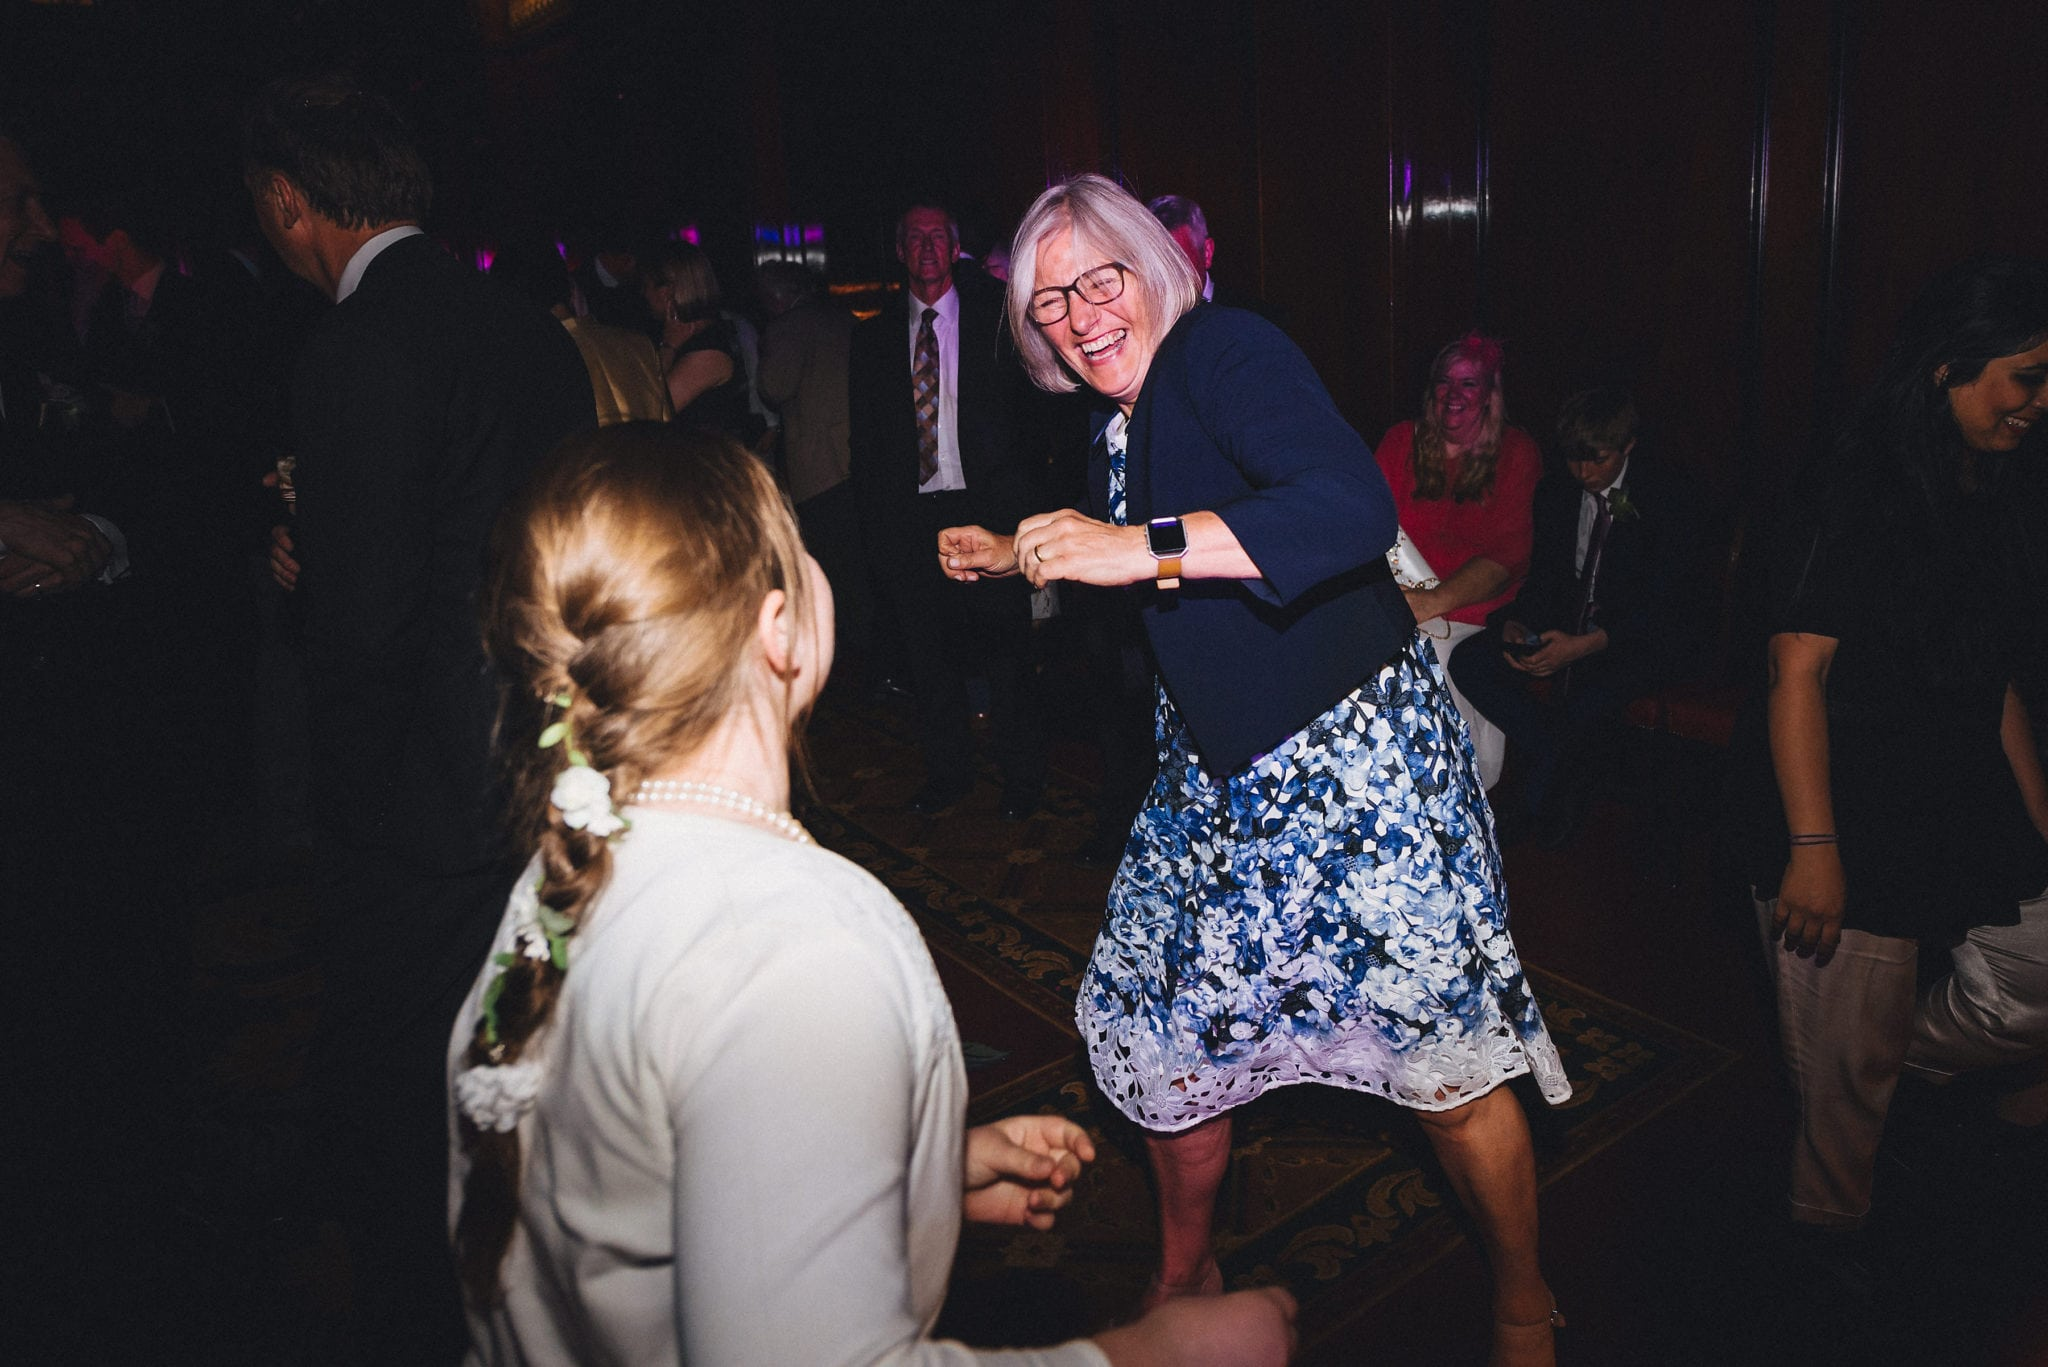 Woman dances with child at wedding reception